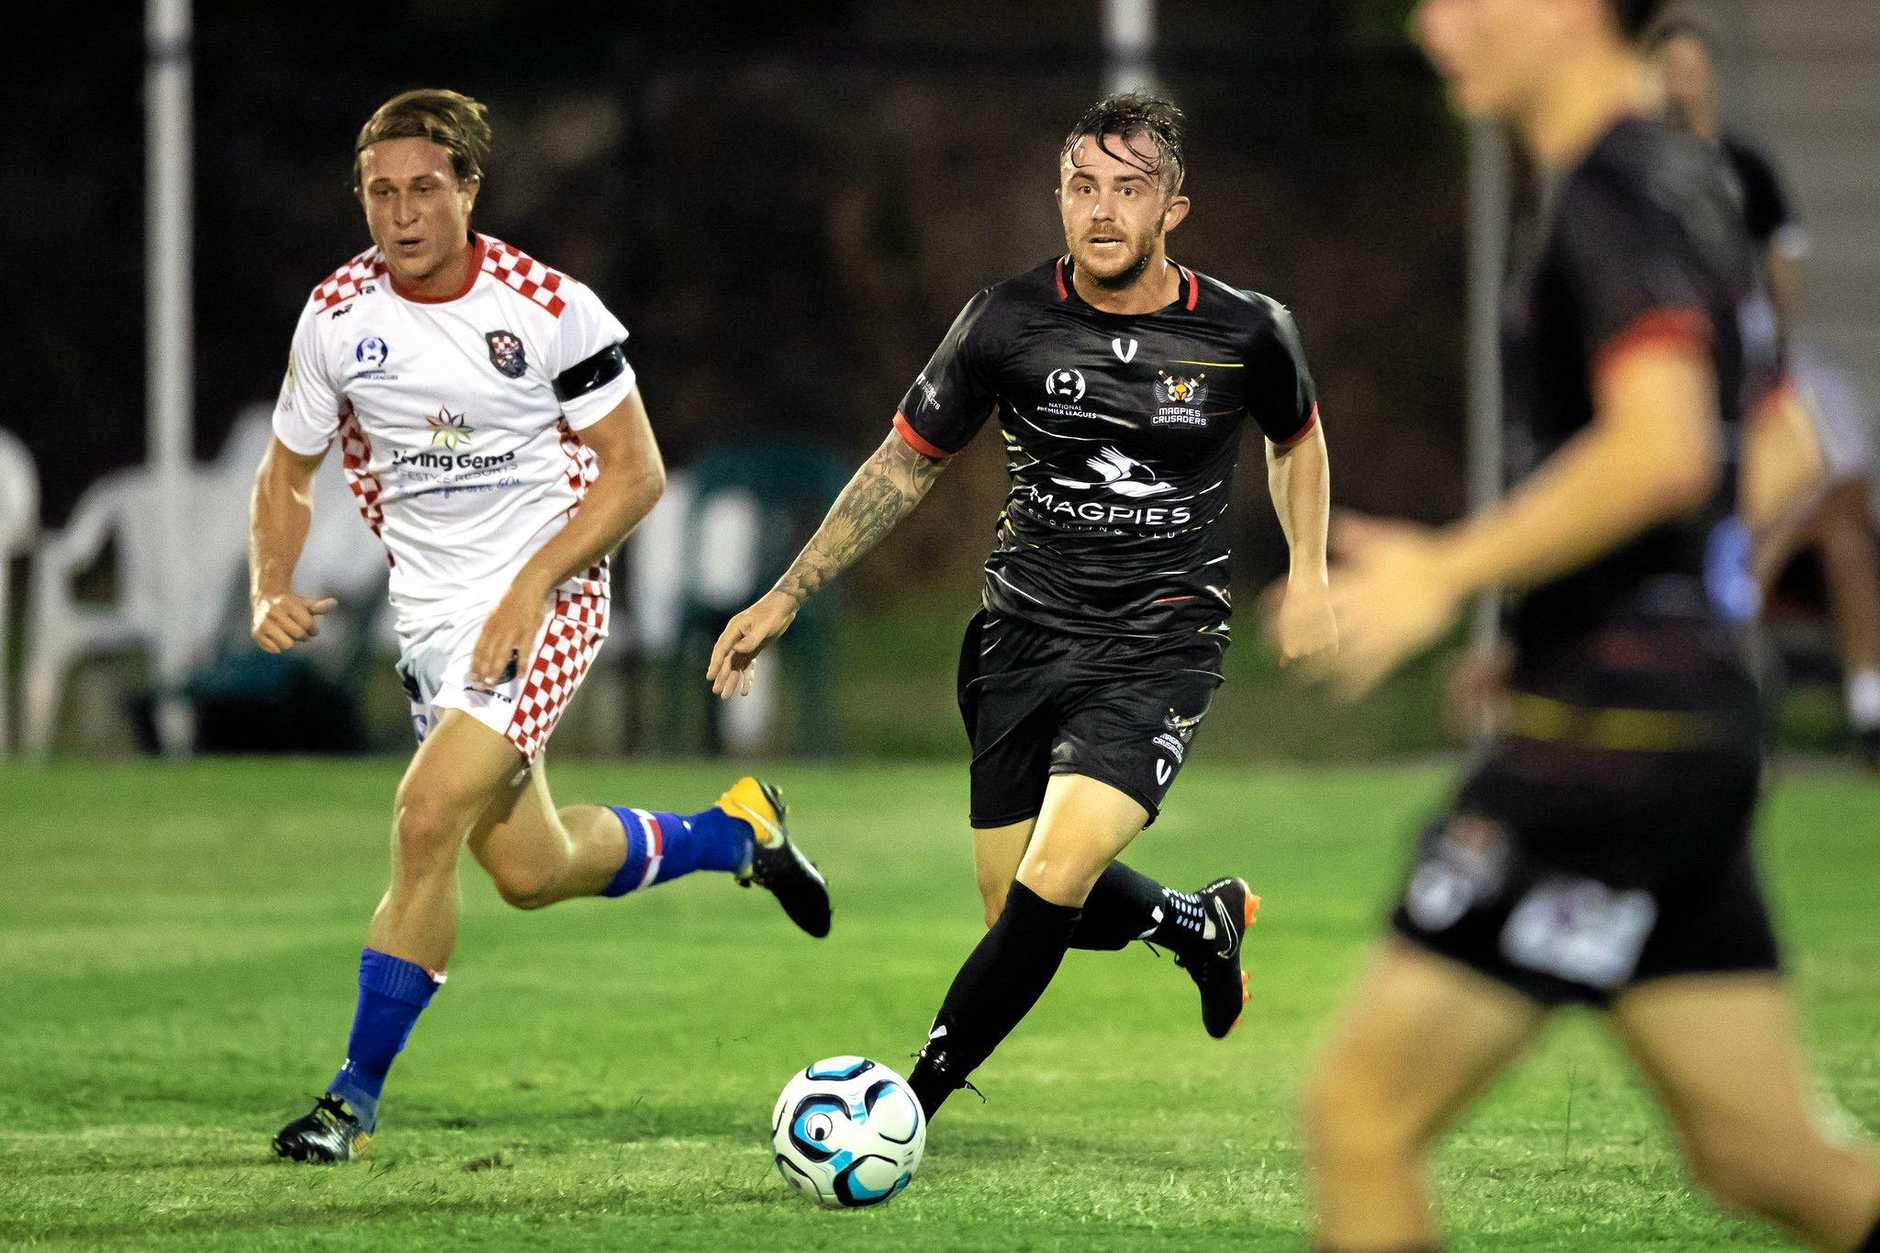 Magpies Crusaders Liam Shipton on the run against the Gold Coast Knights in the opening round of the 2019 NPL Queensland season.